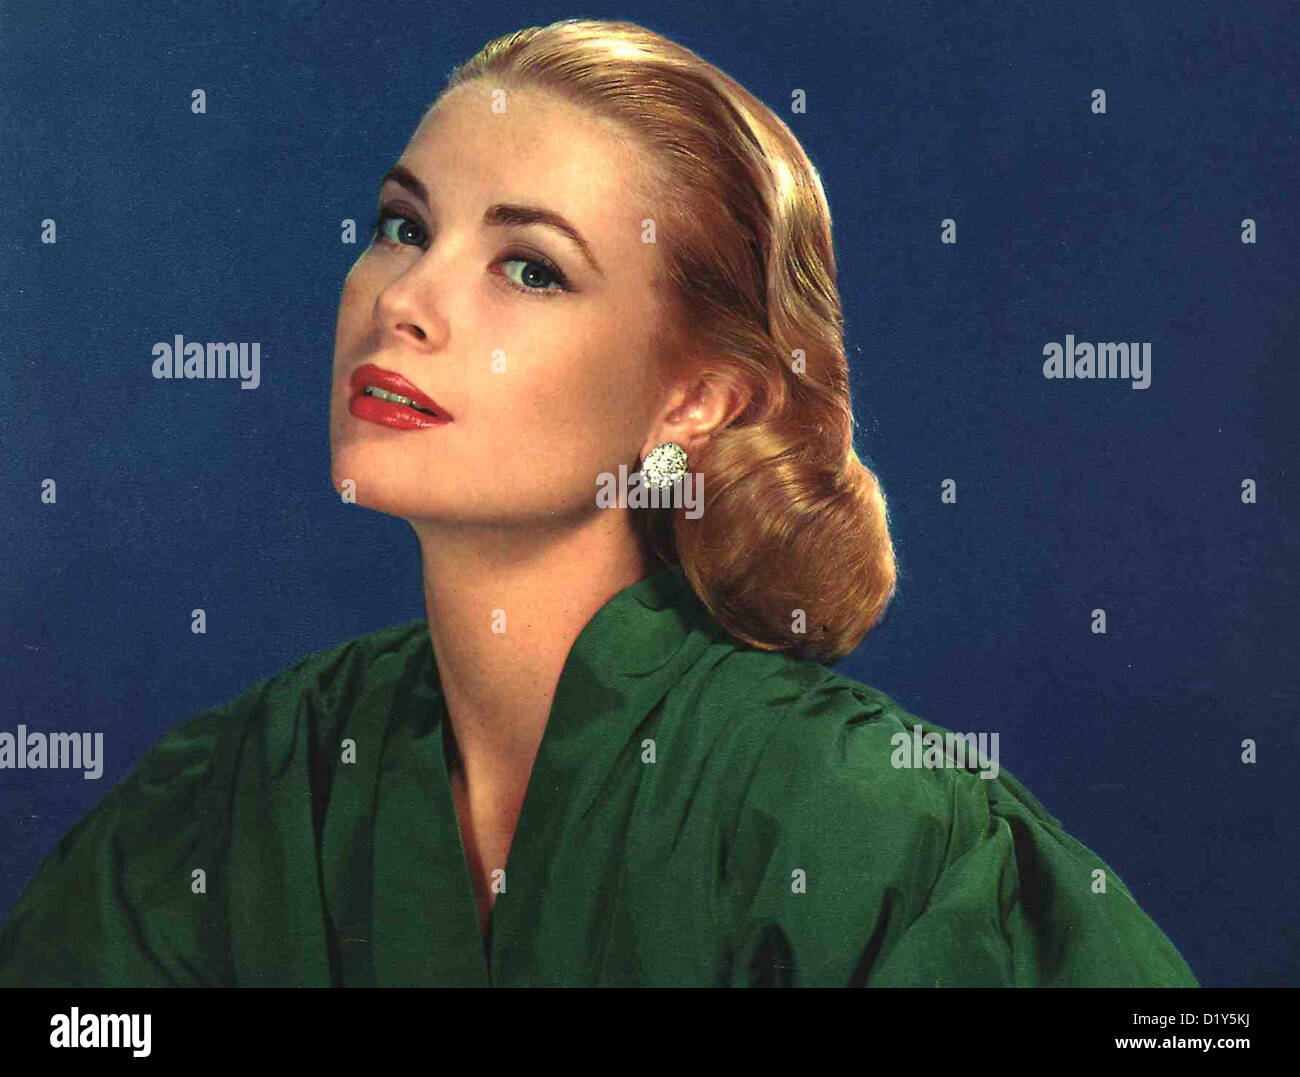 Diva - Grace Kelly   Kelly, Grace   Grace Kelly in 'The Swan', USA 1956 *** Local Caption *** 0  -- - Stock Image